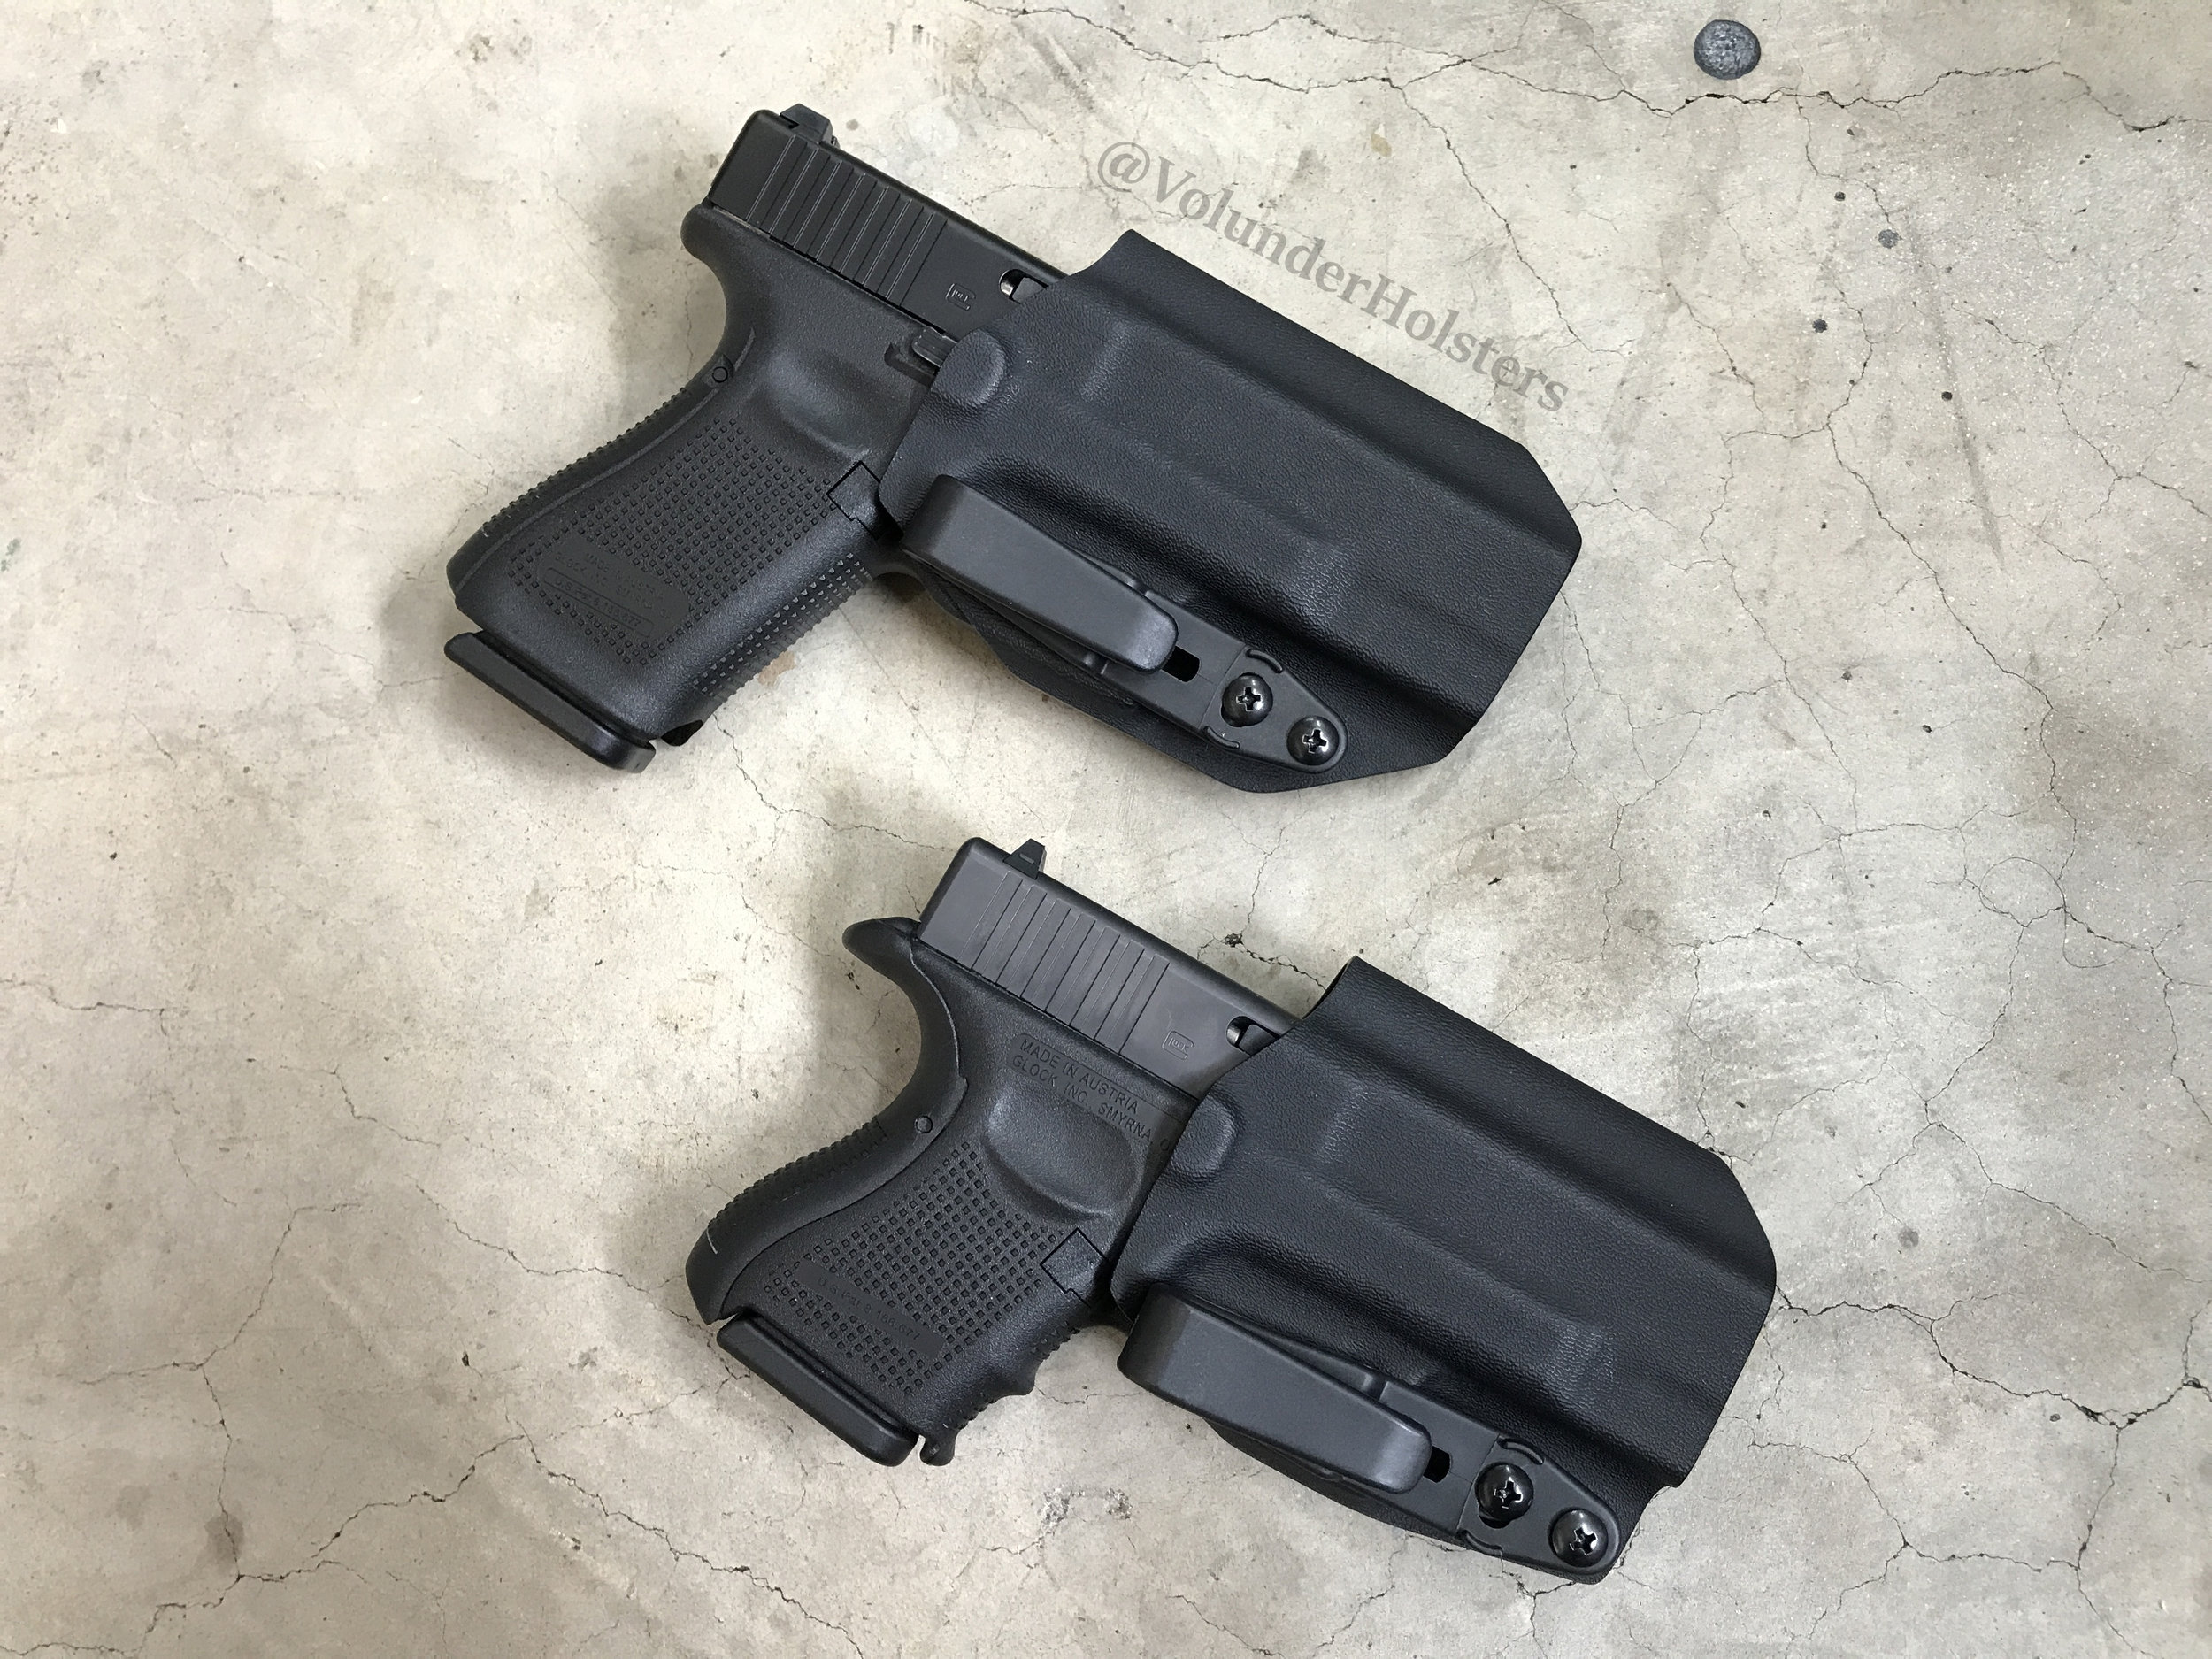 New Group Orthrus Glock 19 and G26 on cement v1.jpg